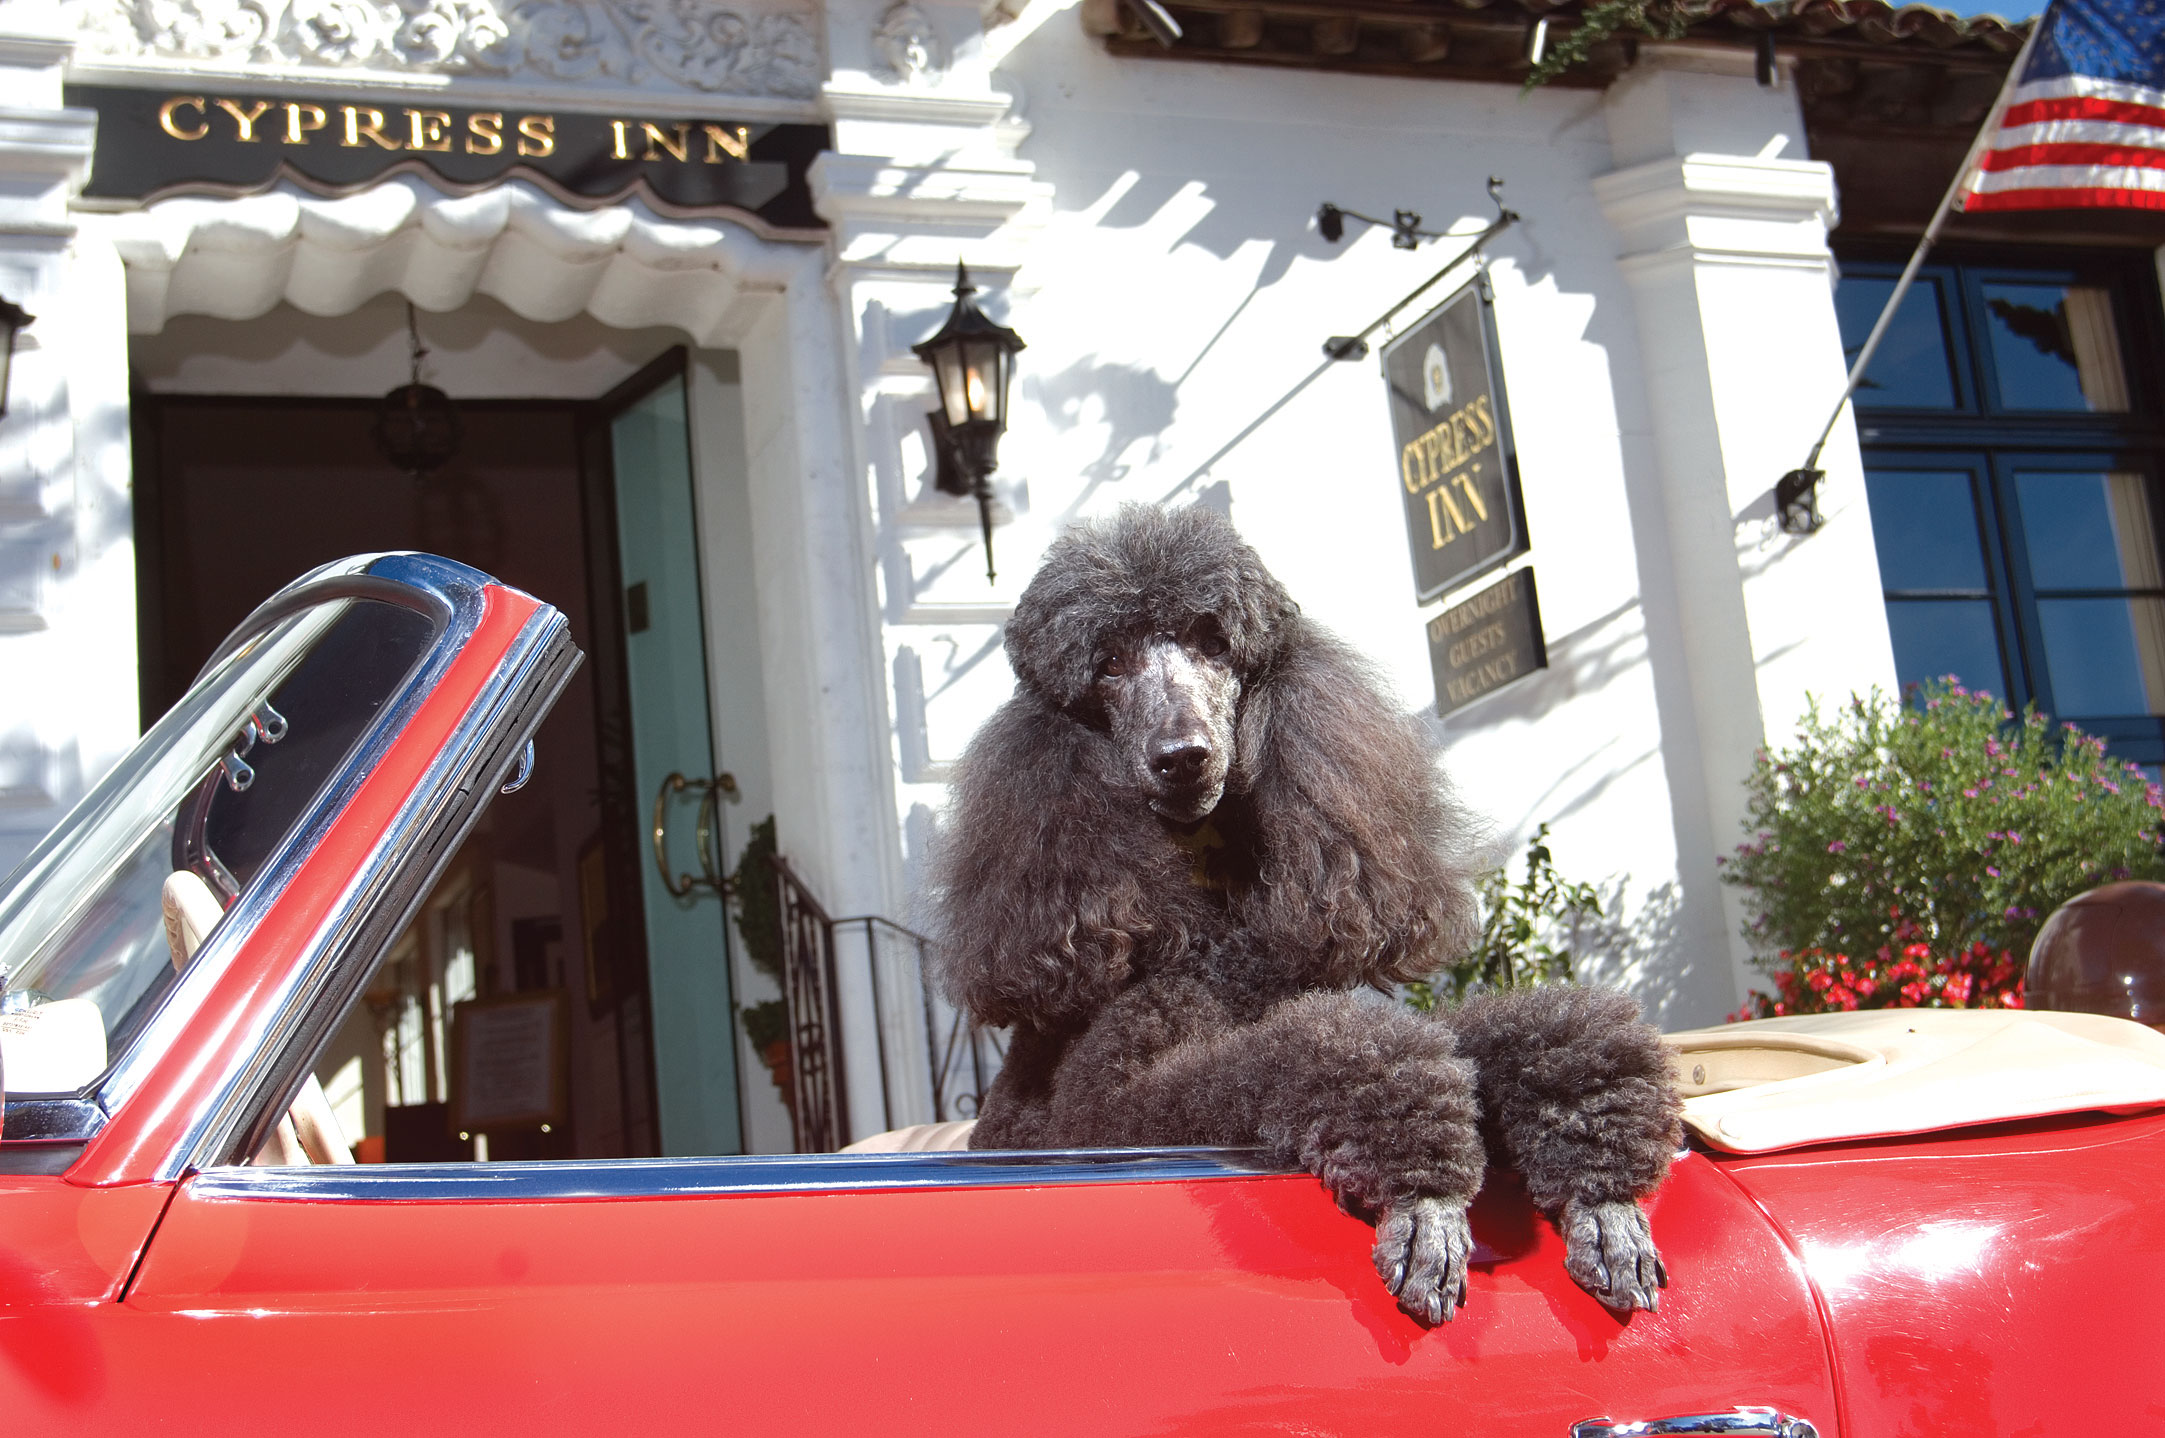 poodle in a convertible carmel california cypress inn